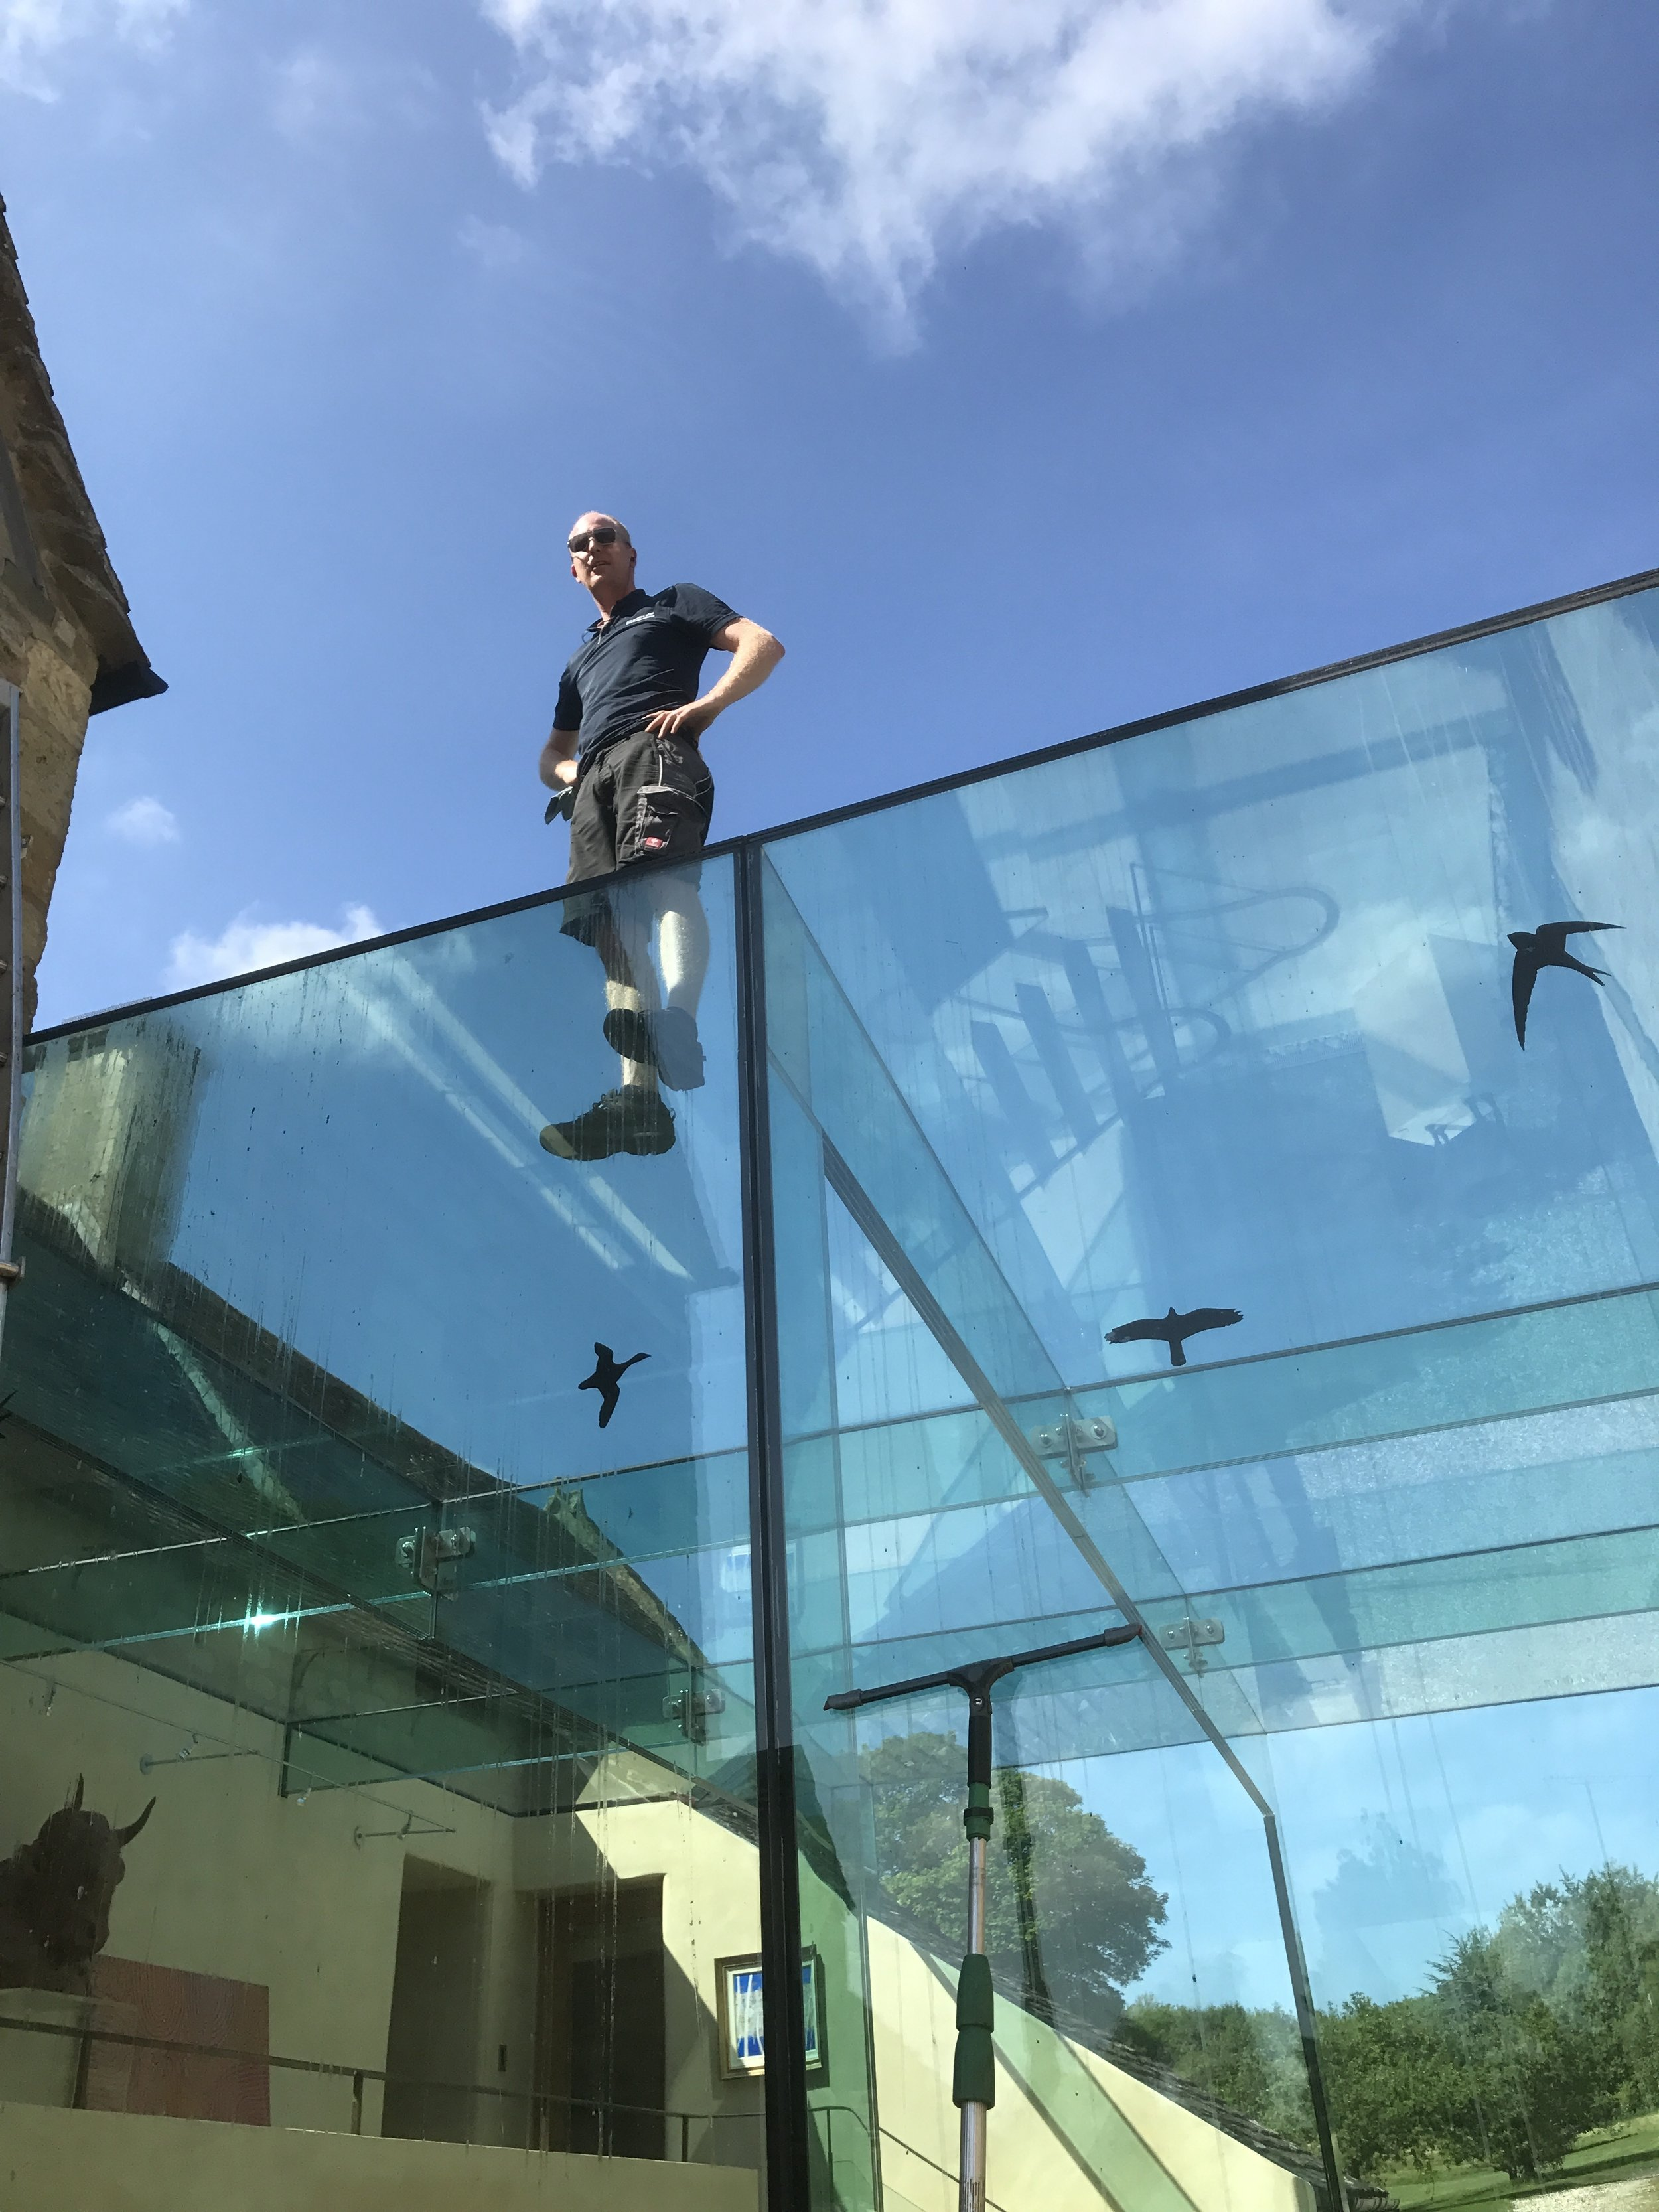 The multi-layer toughened glass is strong enough to stand on!